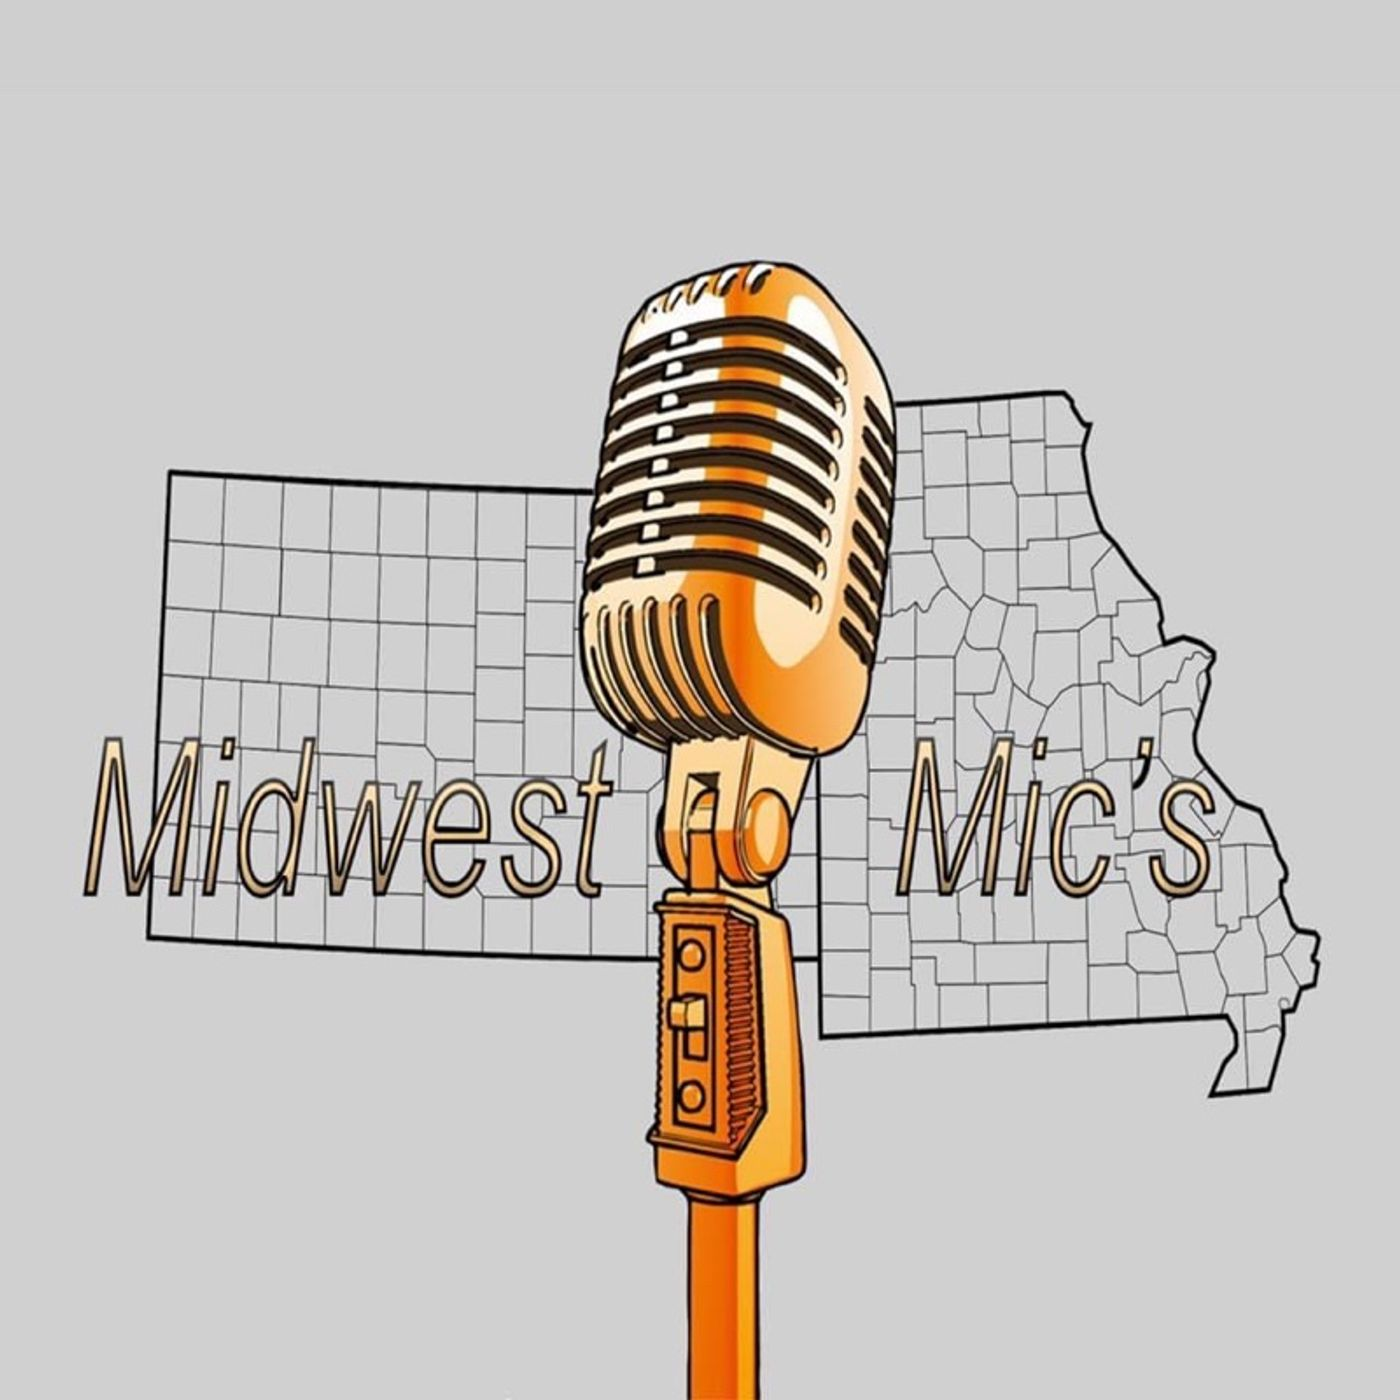 Midwest Mics Quick Bets 5/12/21